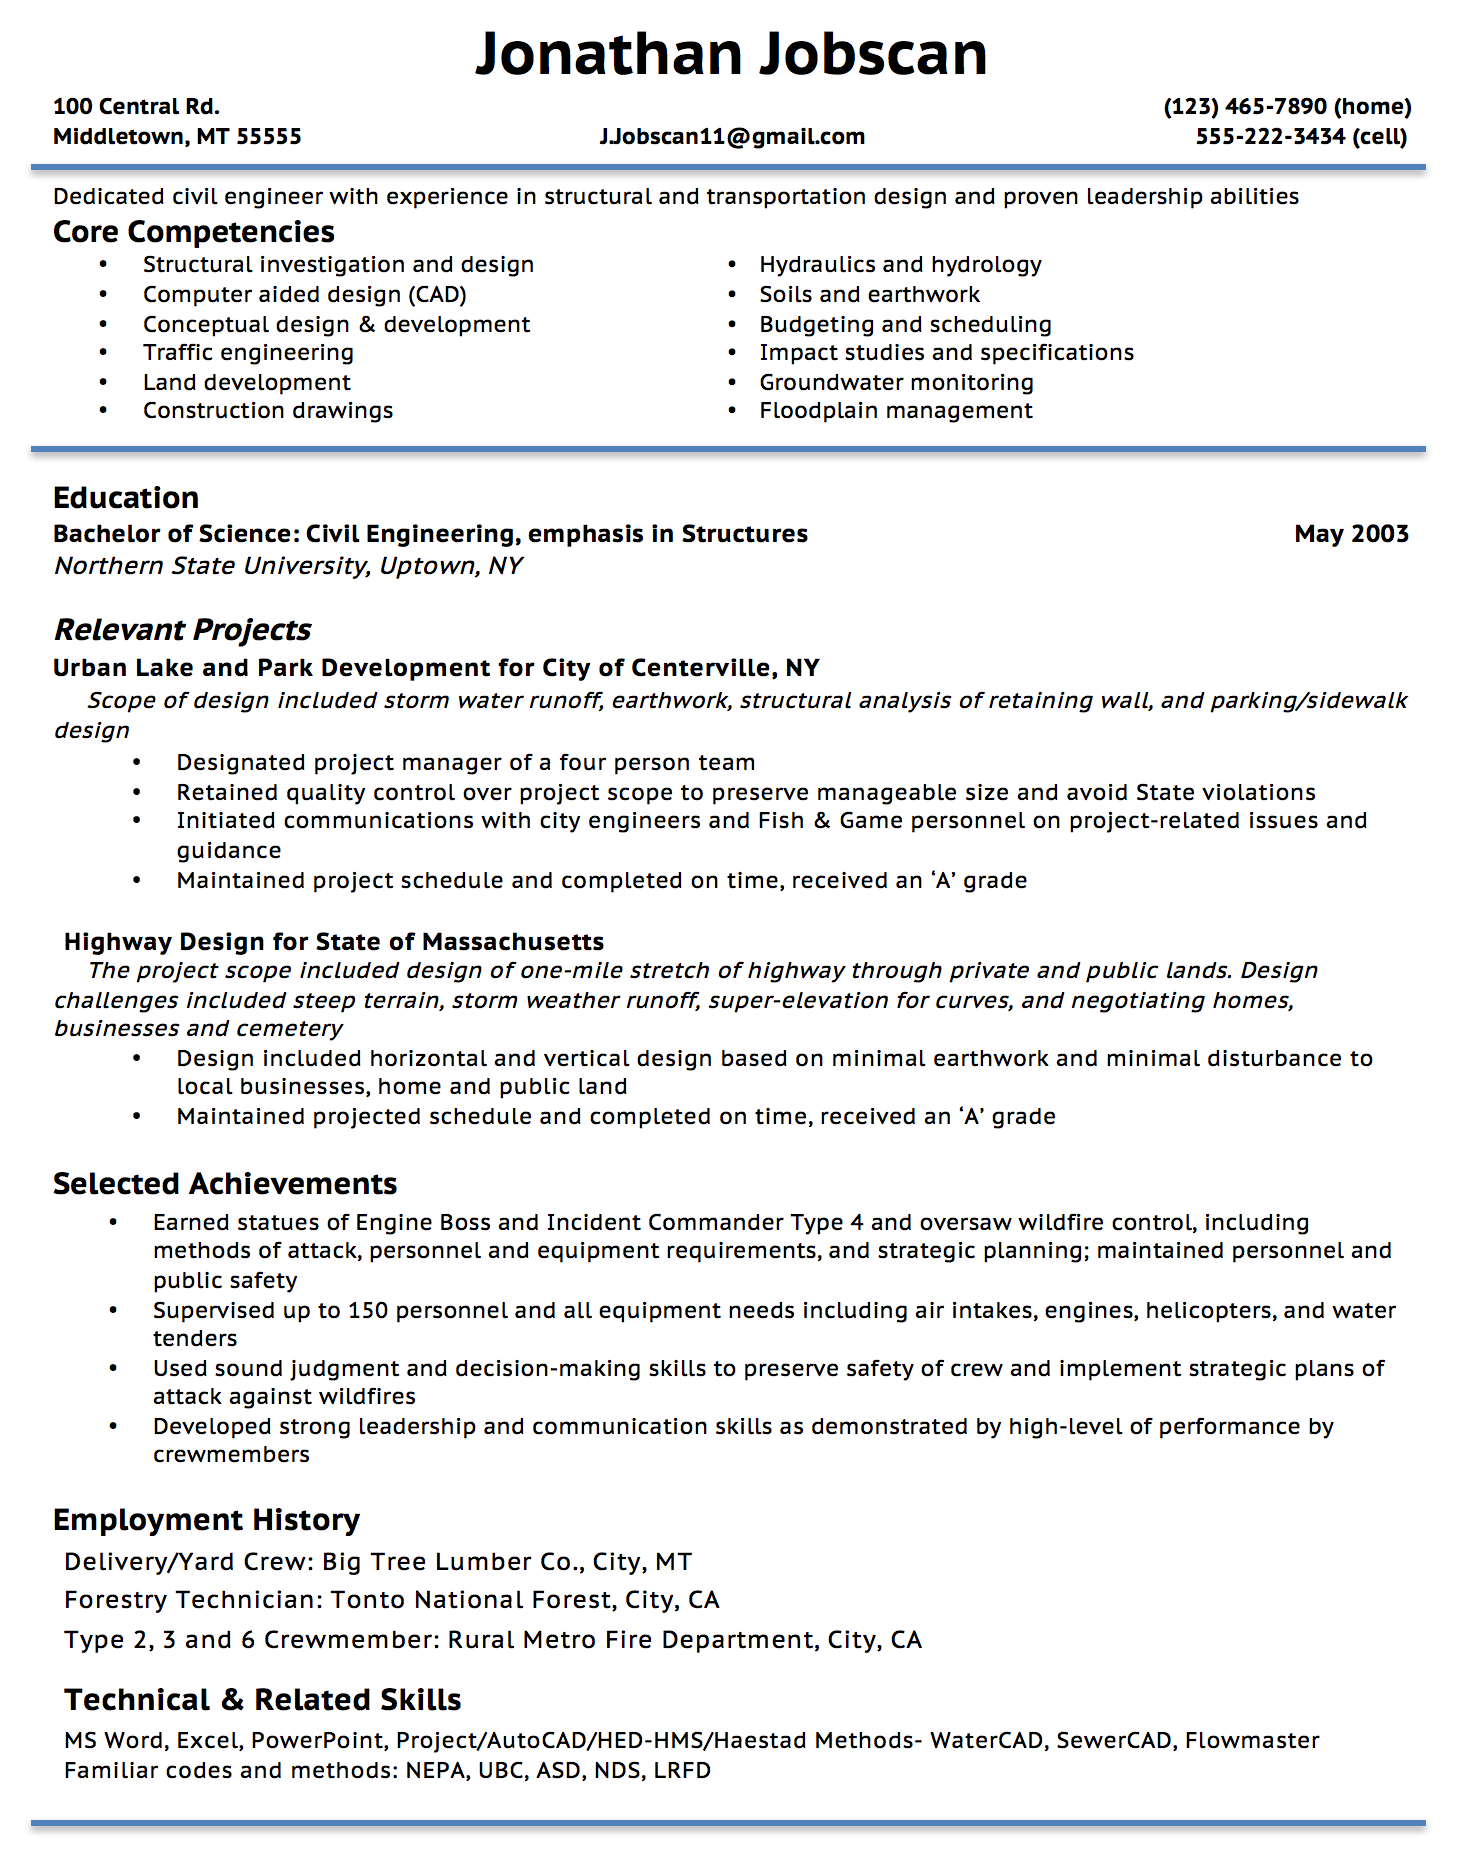 Opposenewapstandardsus  Seductive Resume Writing Guide  Jobscan With Foxy Example Of A Functional Resume Format With Delightful Resume In Microsoft Word Also How Do Make A Resume In Addition Types Of Resume Formats And Example Of Nurse Resume As Well As Opening Statement For Resume Additionally Undergrad Resume From Jobscanco With Opposenewapstandardsus  Foxy Resume Writing Guide  Jobscan With Delightful Example Of A Functional Resume Format And Seductive Resume In Microsoft Word Also How Do Make A Resume In Addition Types Of Resume Formats From Jobscanco